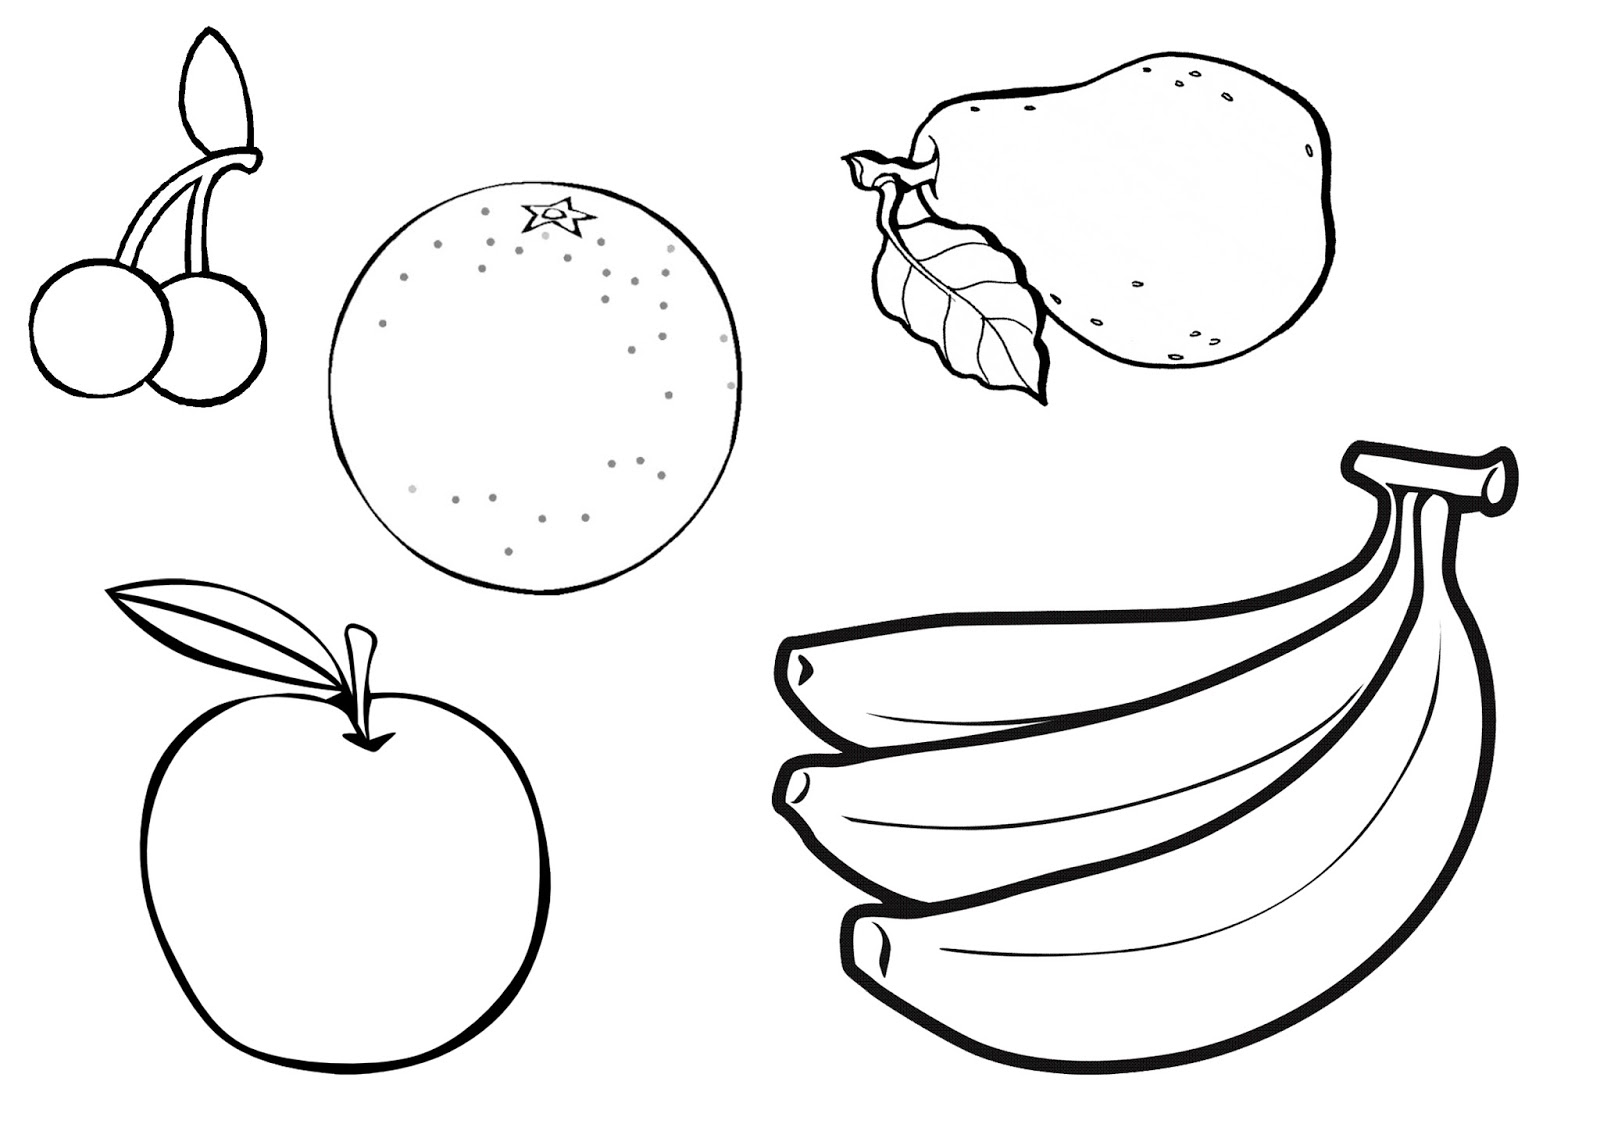 fruits images for coloring cartoon fruits coloring pages crafts and worksheets for for coloring fruits images